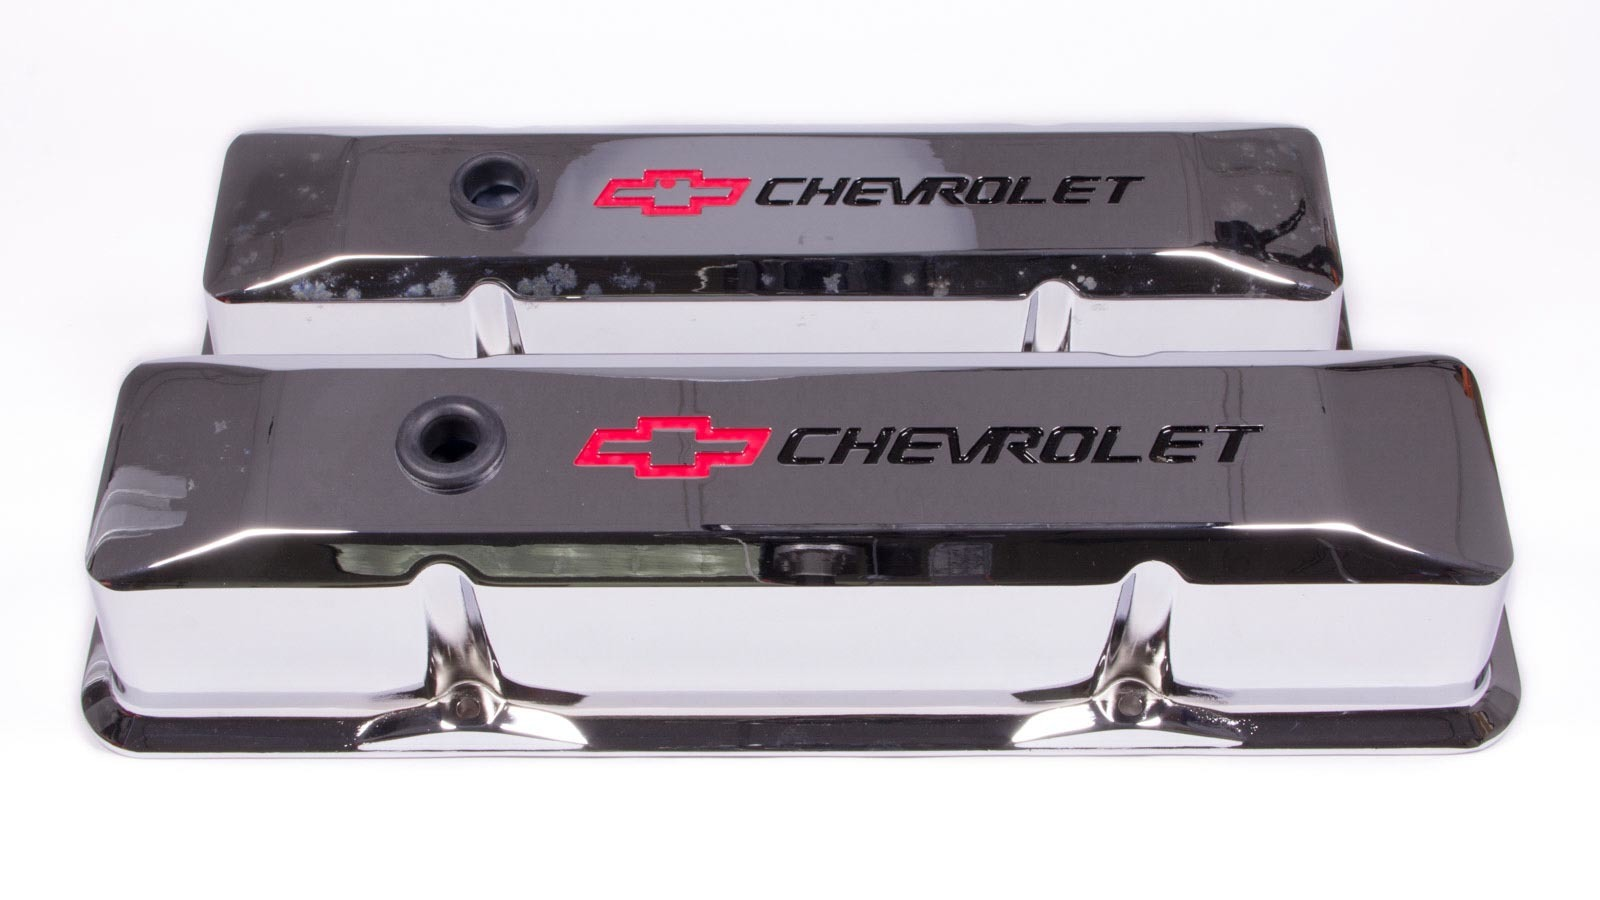 Proform 141-117 Valve Cover, Die-Cast, Tall, Baffled, Breather Hole, Recessed Chevrolet Bowtie Logo, Aluminum, Chrome, Small Block Chevy, Pair